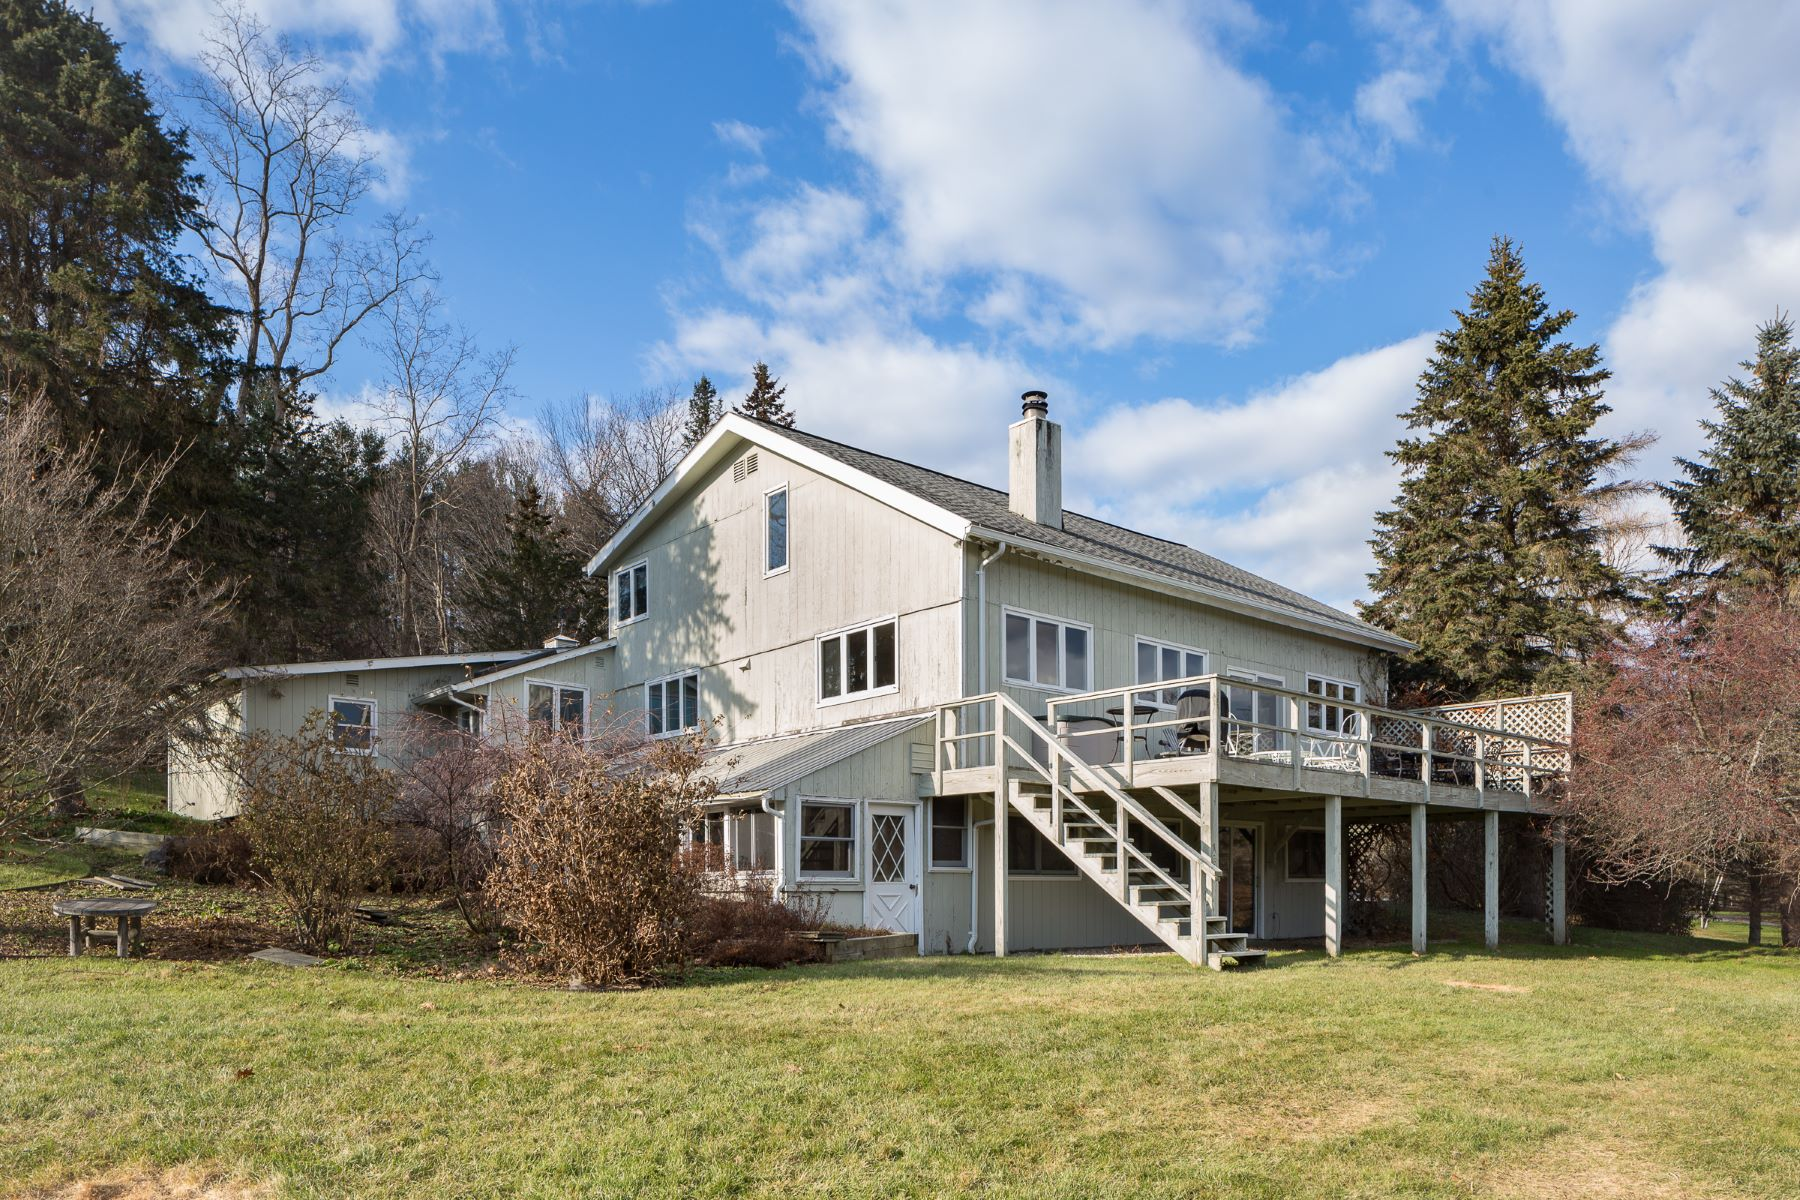 Single Family Home for Sale at Contemporary Country Retreat 1748 County Rte 5 Canaan, New York 12029 United States